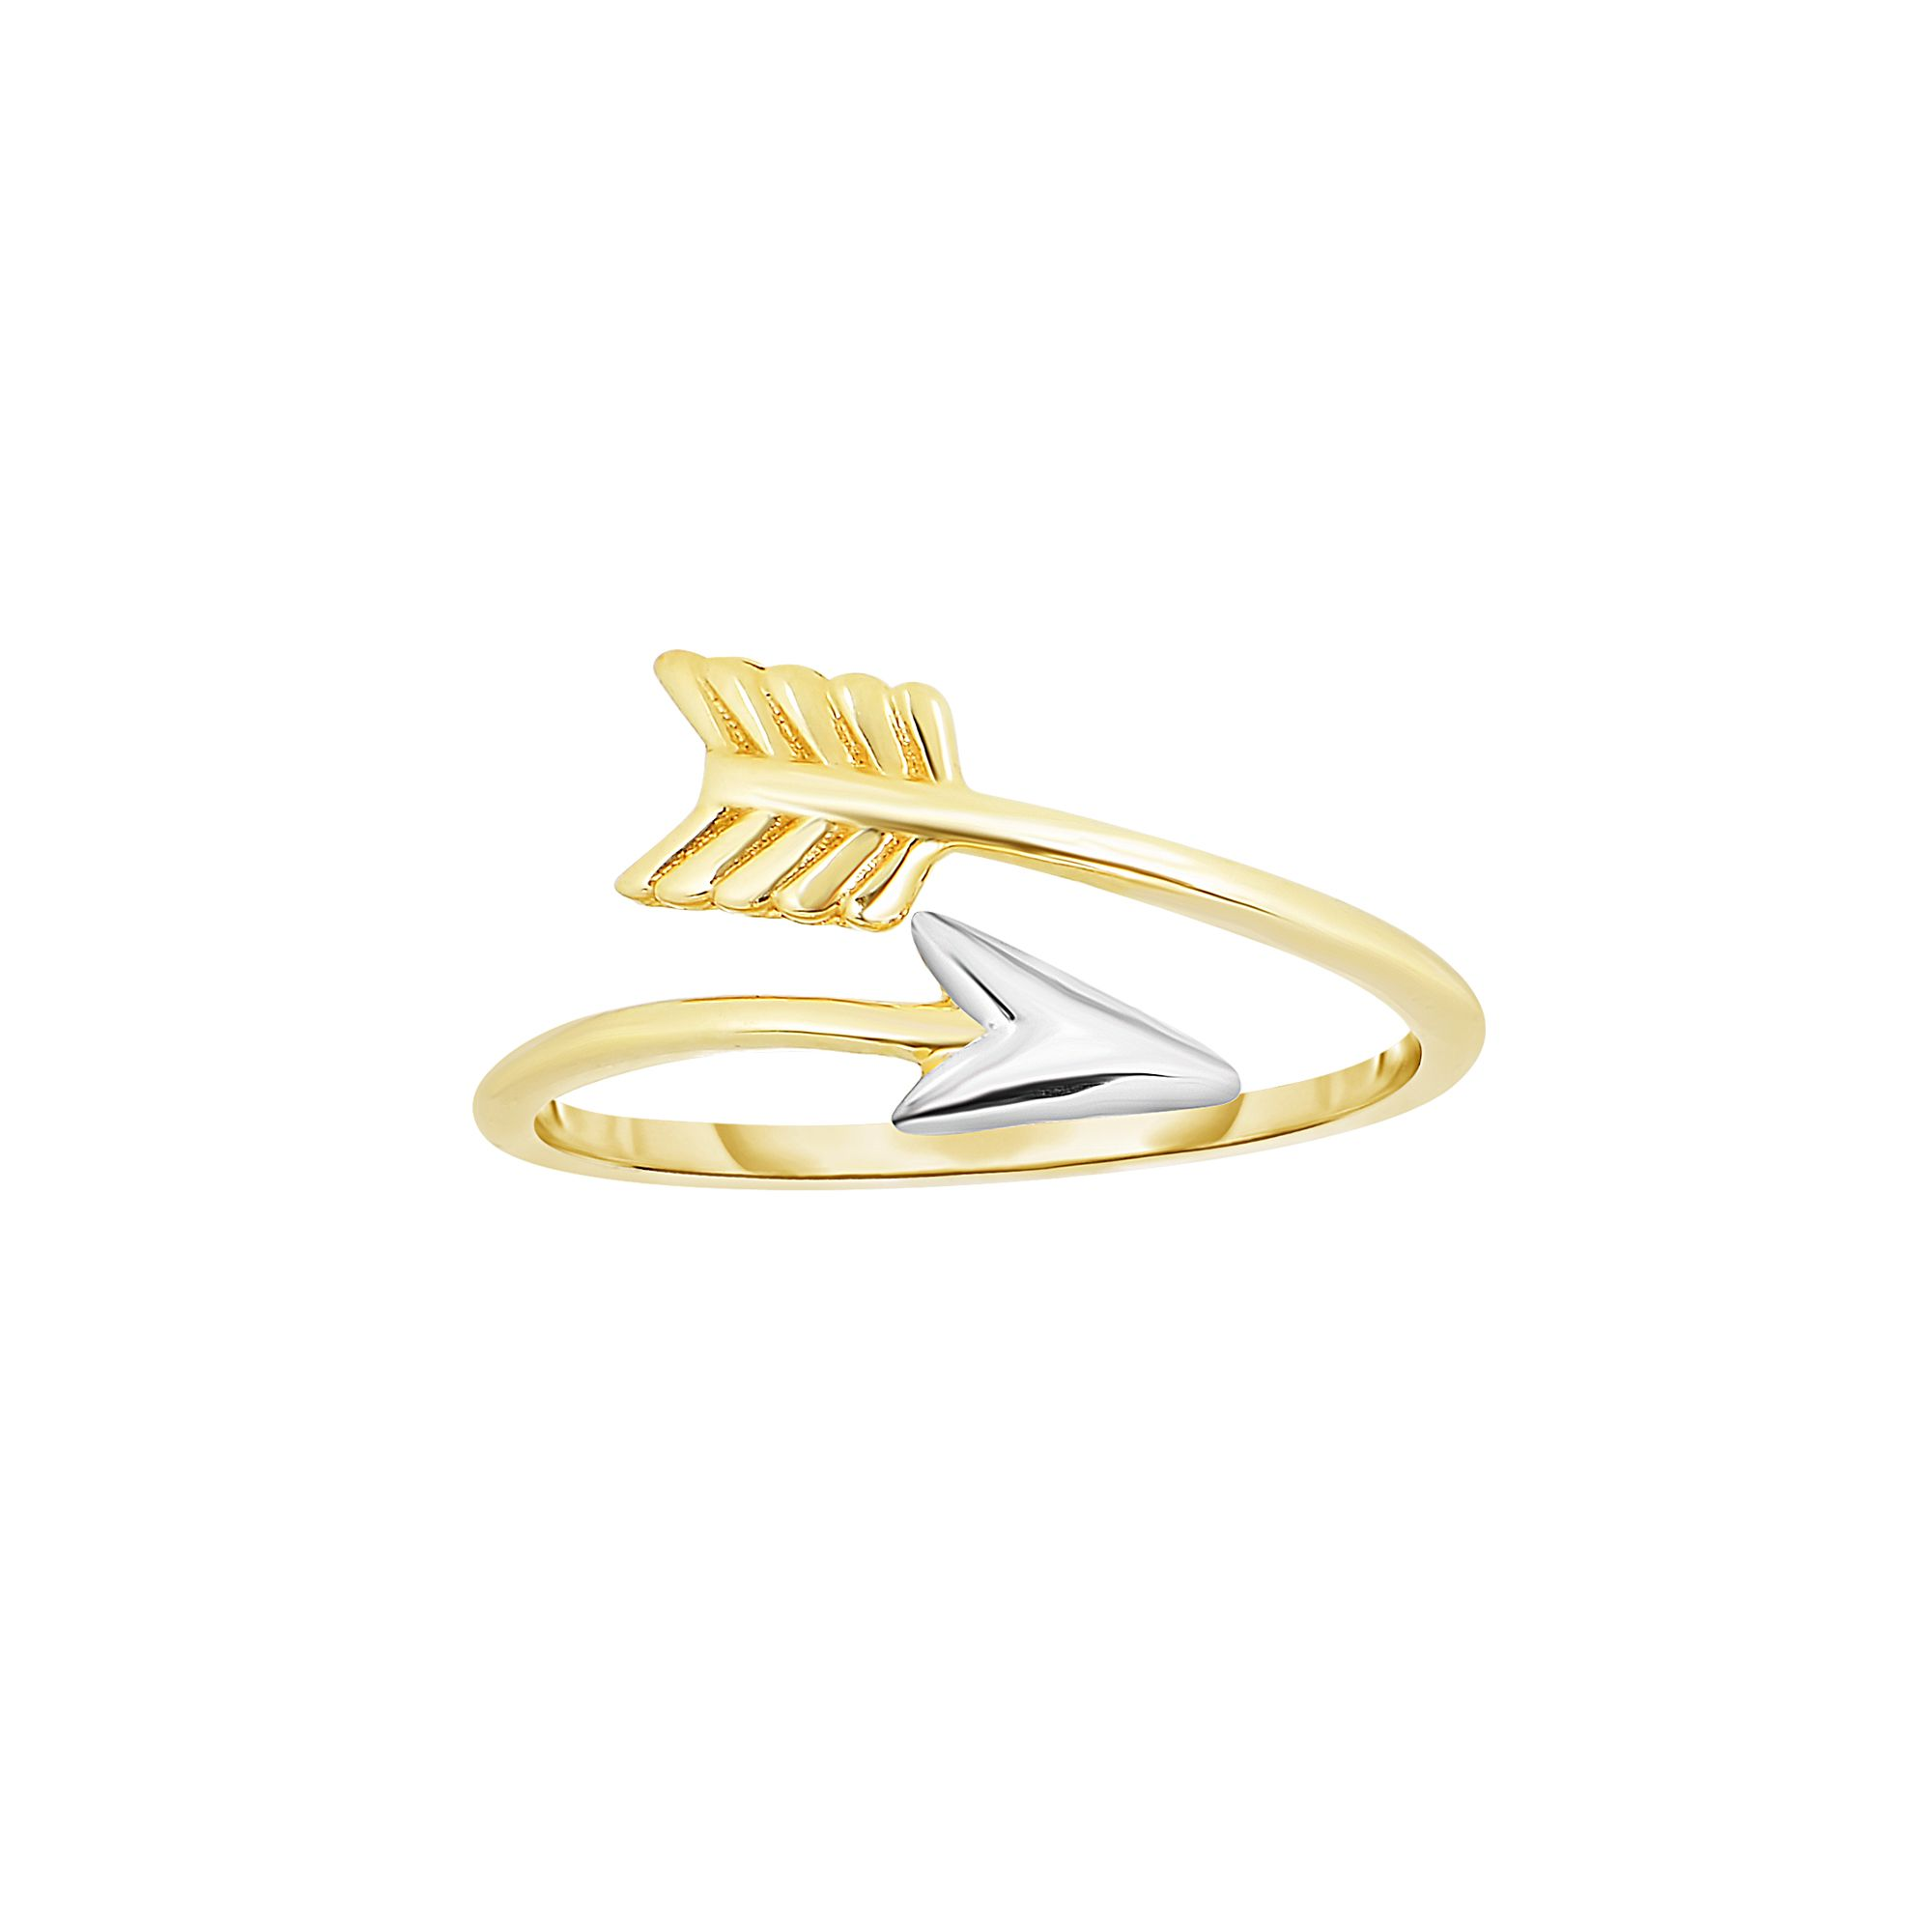 14 Karat White and Yellow Gold Two Tone Arrow Ring